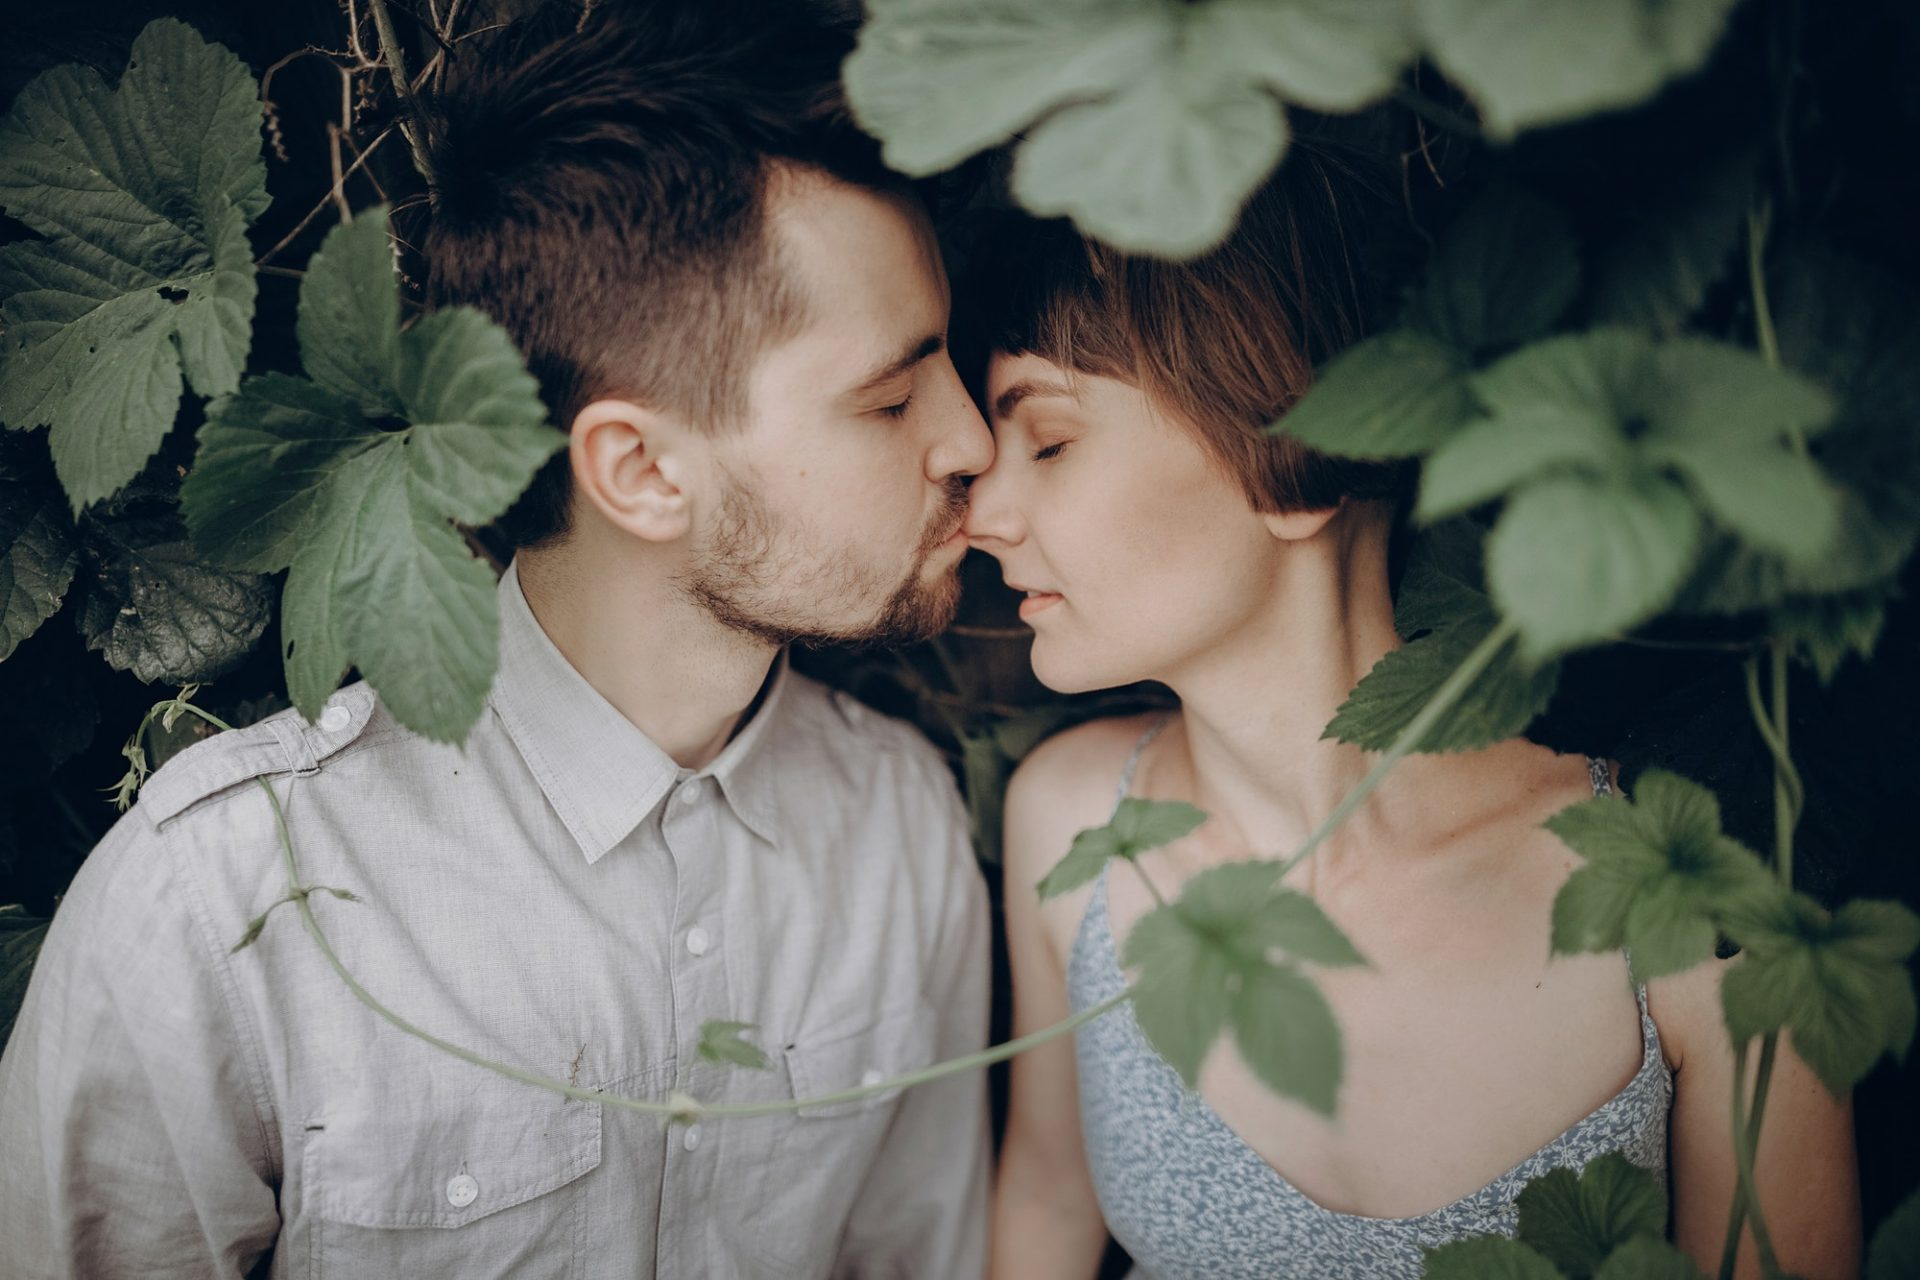 Stylish hipster couple kissing in green leaves, holding hands